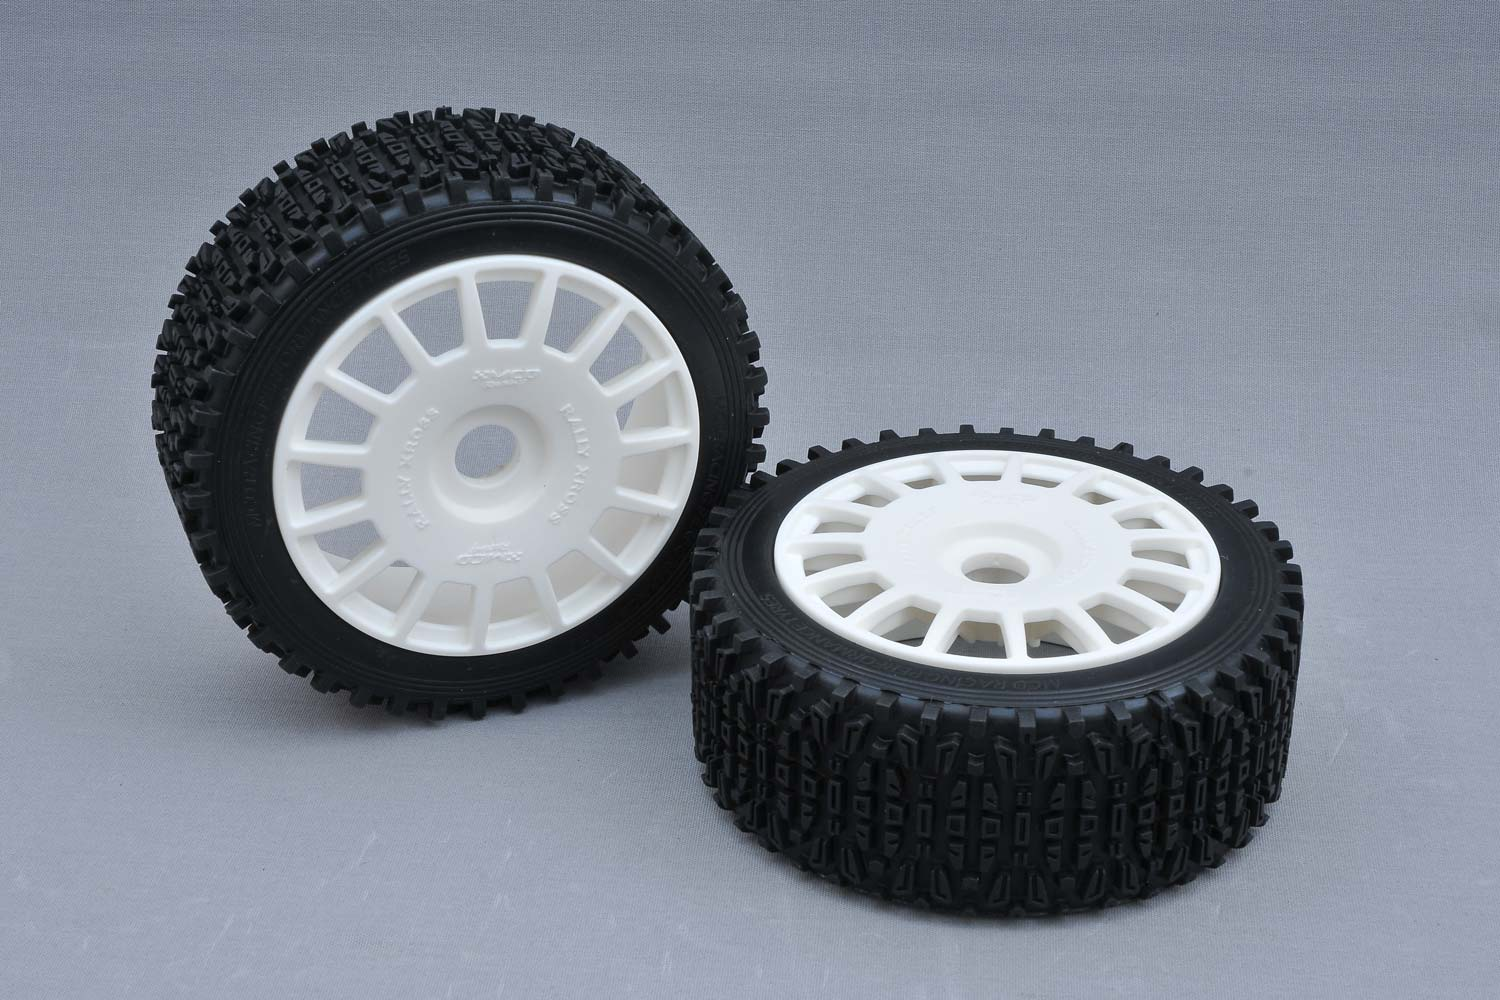 MCD Racing 160mm Dirt-Xross Rally Tyres (BM) with inserts. 1pr